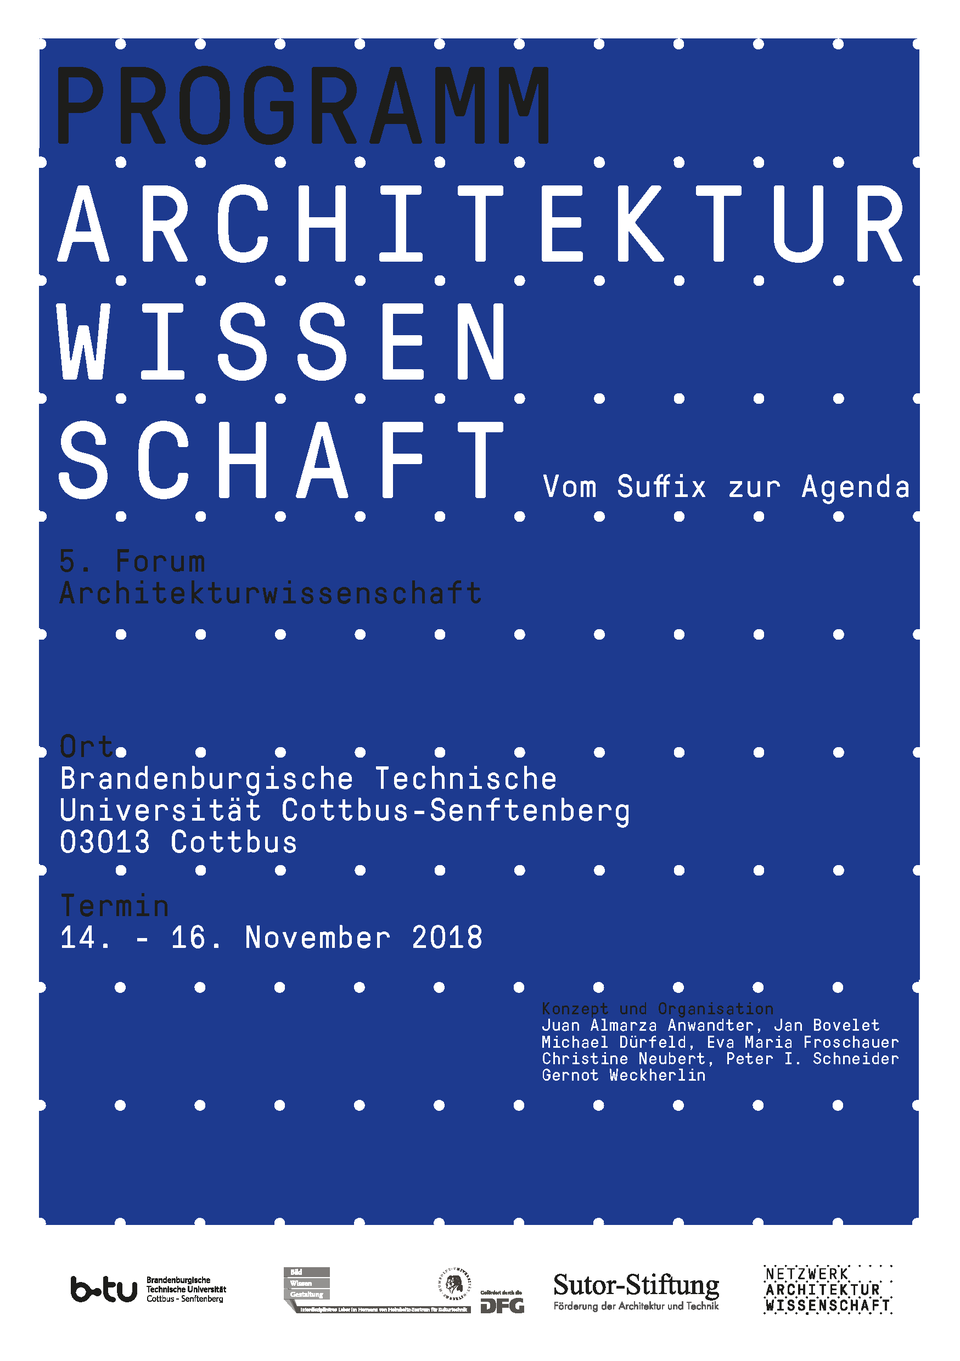 5. Forum Architekturwissenschaft